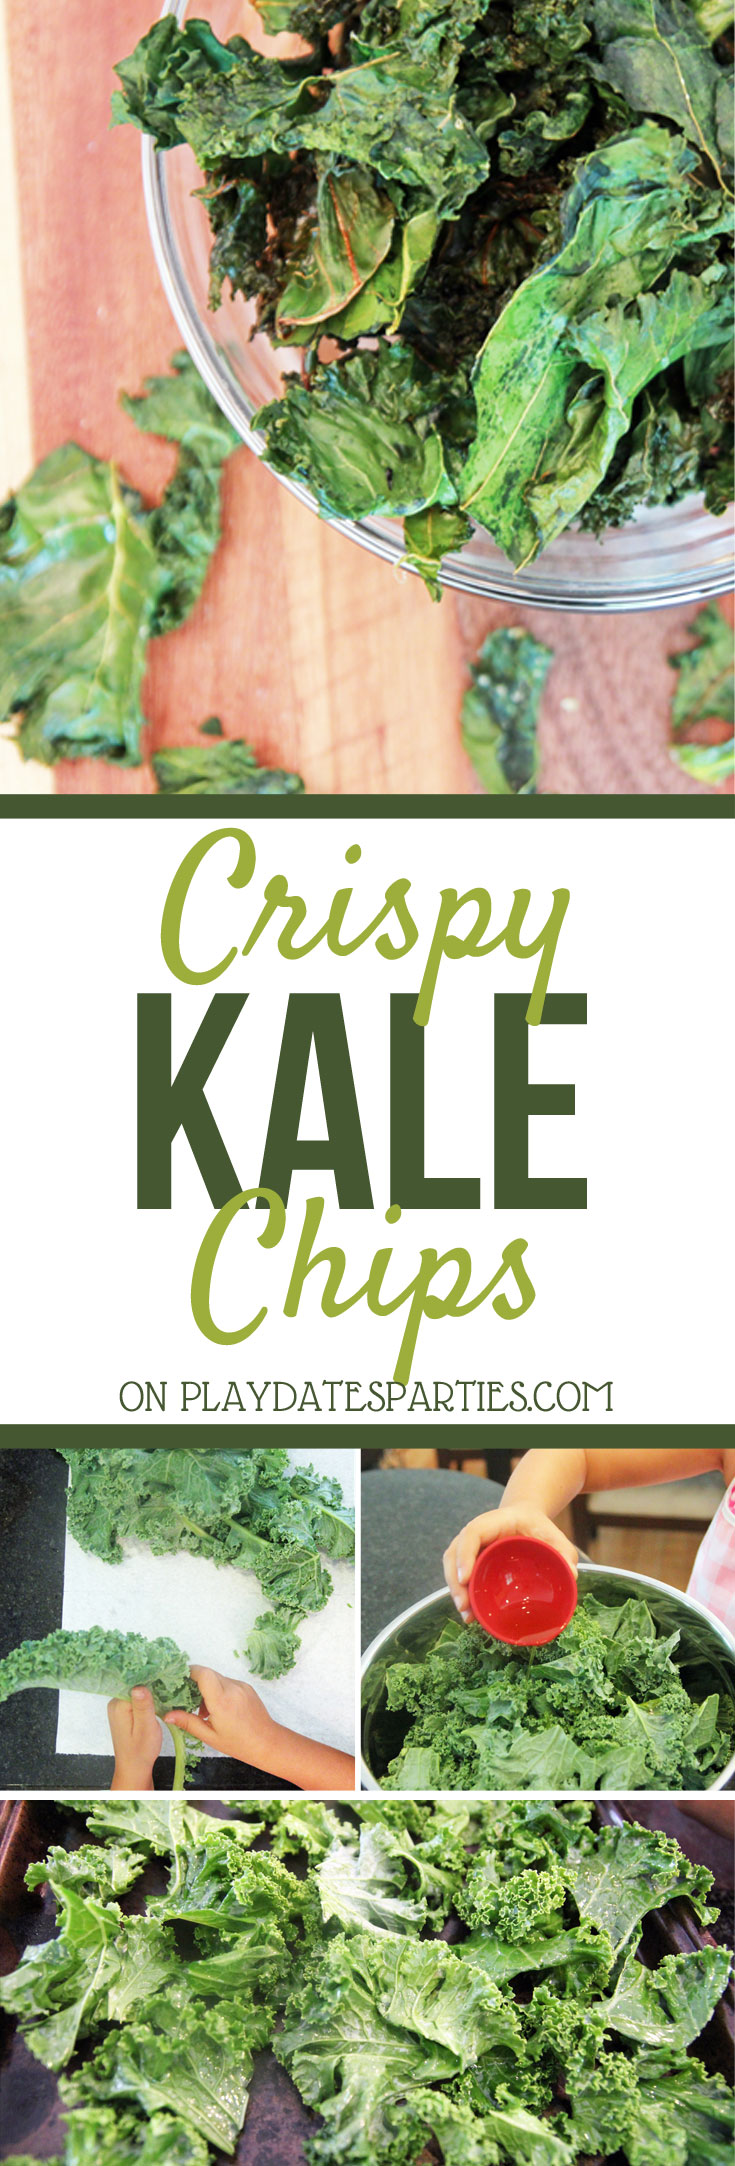 A trip to the farmer's market and this crispy kale chips recipe are a fantastic way to get kids excited about eating healthy! #easyrecipes #vegetables #healthy #kids